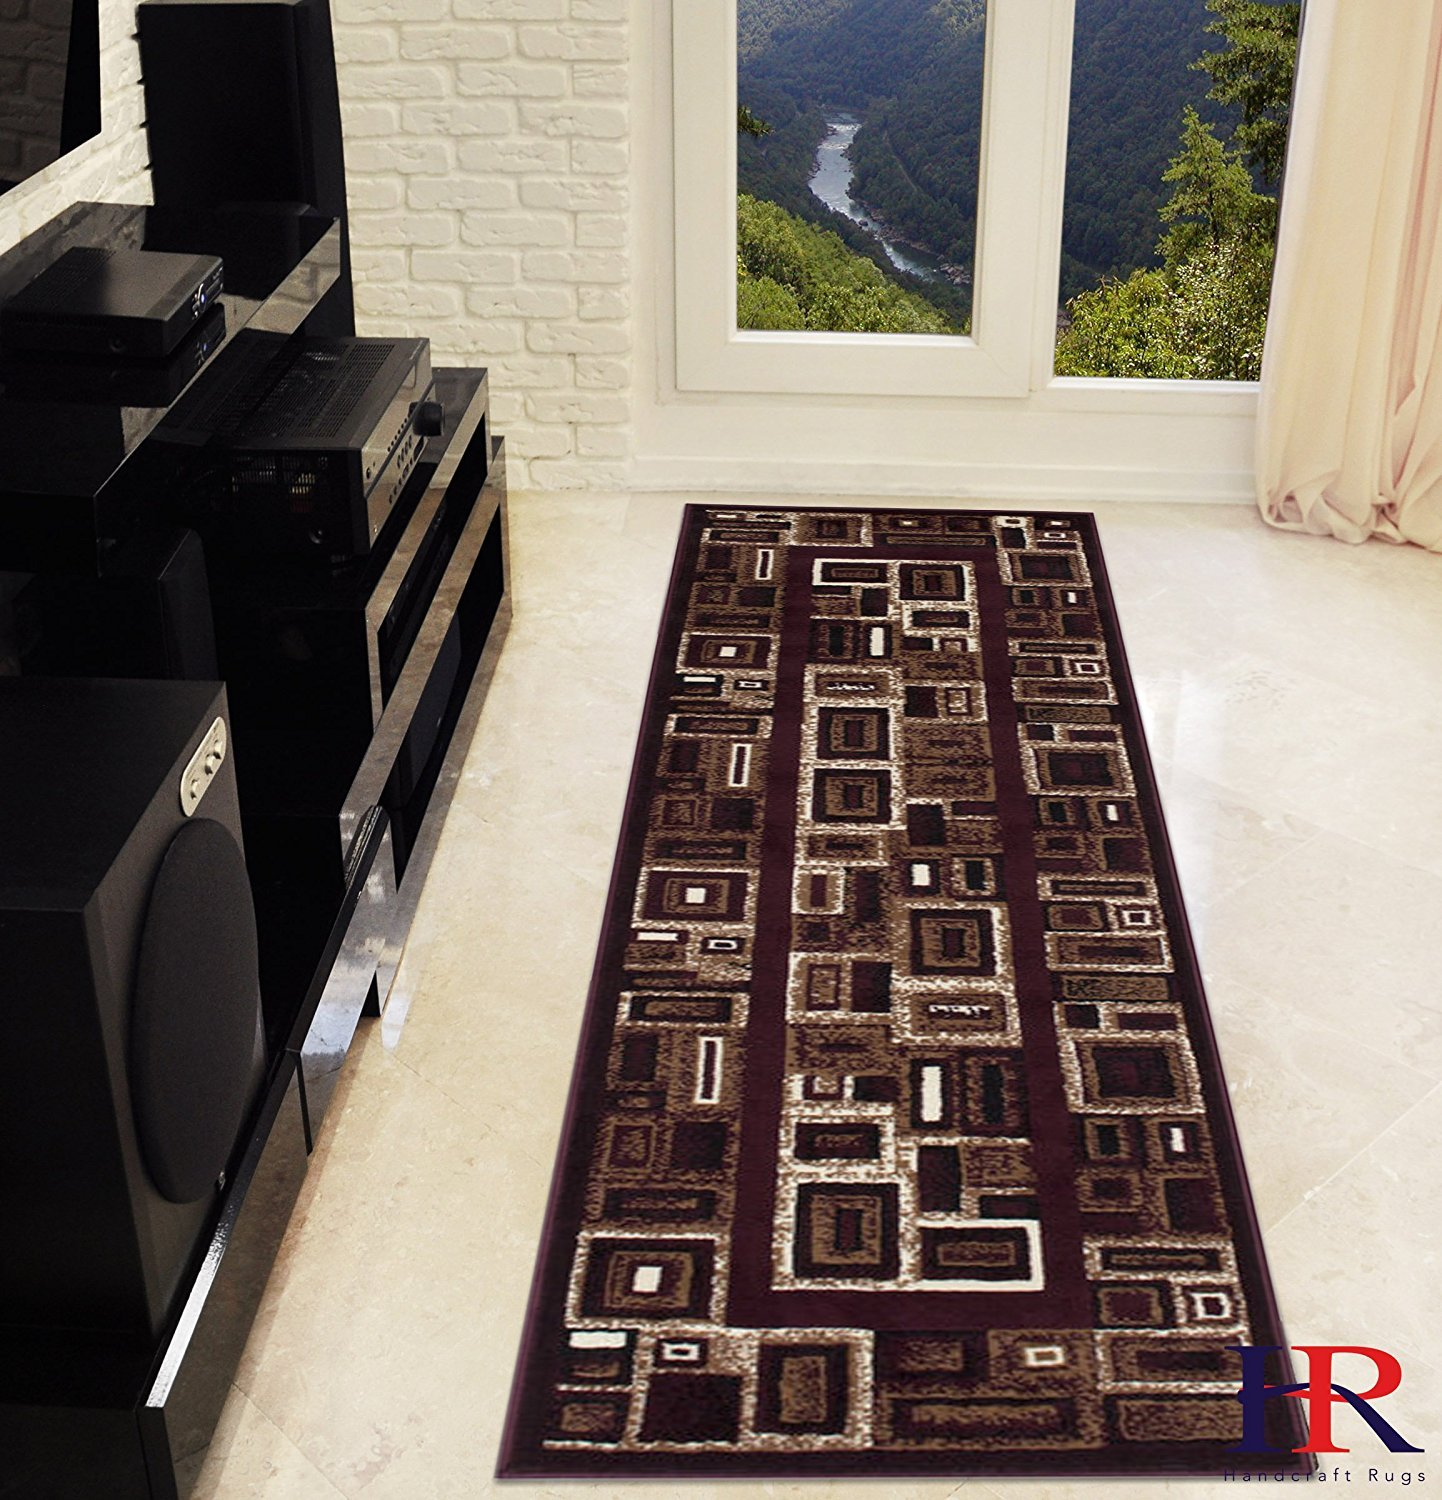 Modern Contemporary Abstract Rug- Frame/Boxy/Cube Pattern-Shed Free Burgundy Red/Beige/Ivory/Black